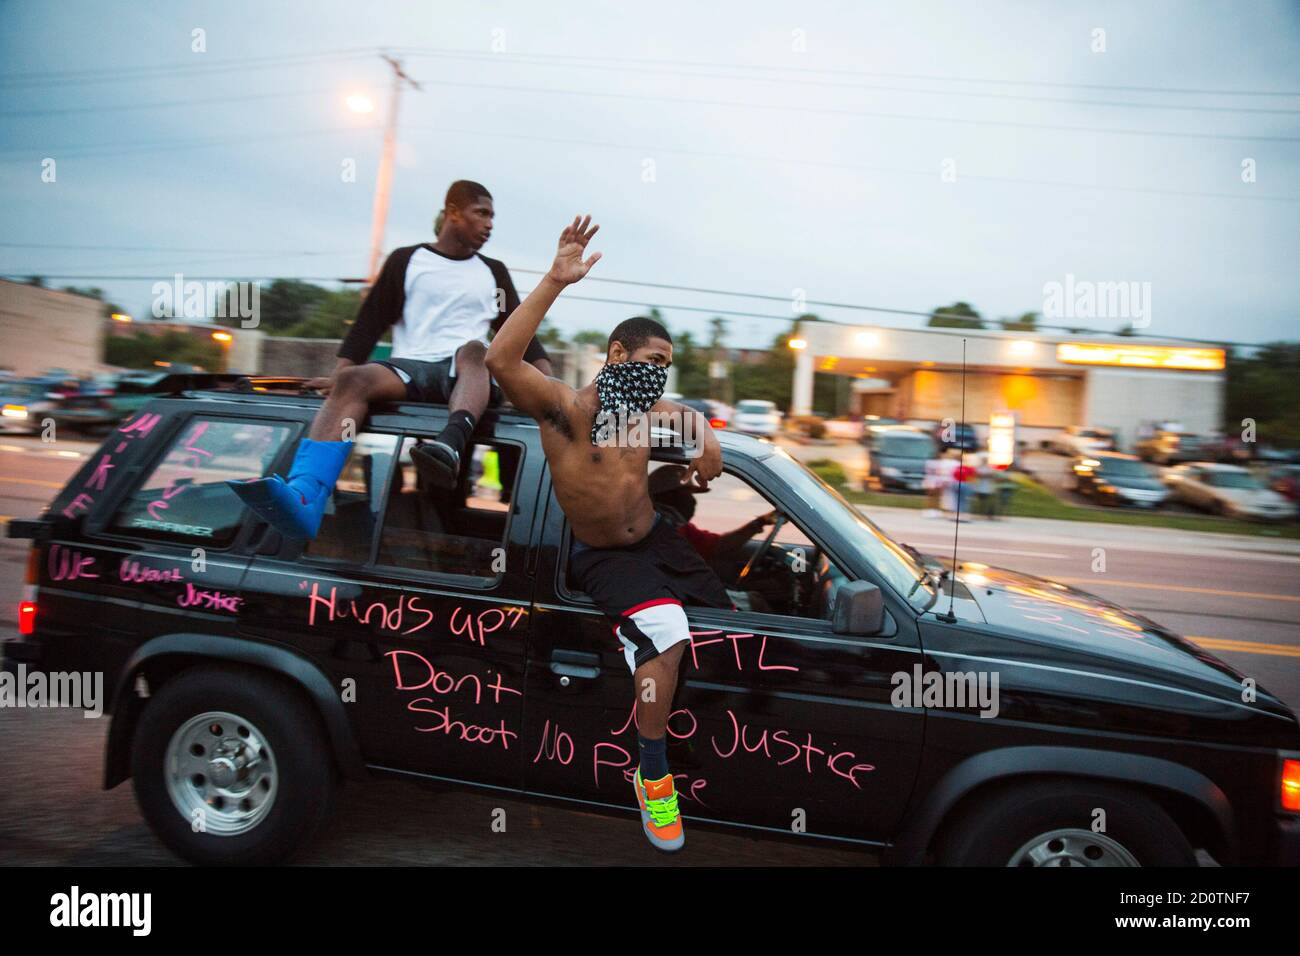 Protesters hang out of a car as they honk their horn and chant during ongoing demonstrations in reaction to the shooting of Michael Brown in Ferguson, Missouri August 16, 2014. Missouri Governor Jay Nixon declared a state of emergency and imposed a curfew in Ferguson on Saturday following a week-long series of racially charged protests and looting over the shooting of the unarmed black teenager by a white police officer. REUTERS/Lucas Jackson (UNITED STATES - Tags: CIVIL UNREST CRIME LAW POLITICS TPX IMAGES OF THE DAY) Stock Photo